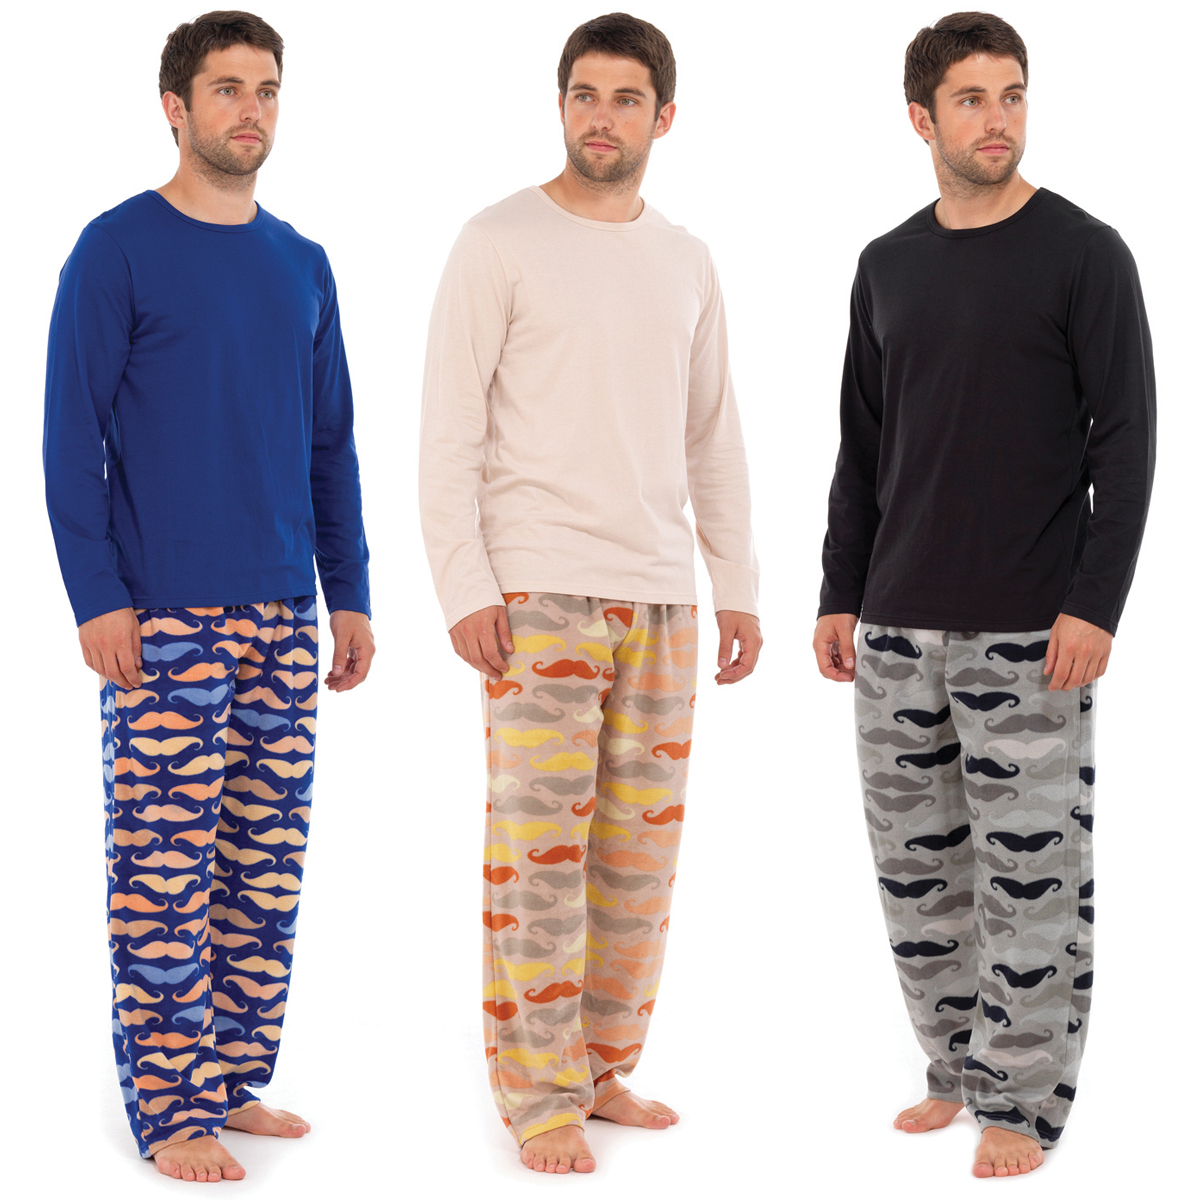 Mens Moustache PJ Print Fleece Pyjamas Sets Night Wear PJ's 2 ...